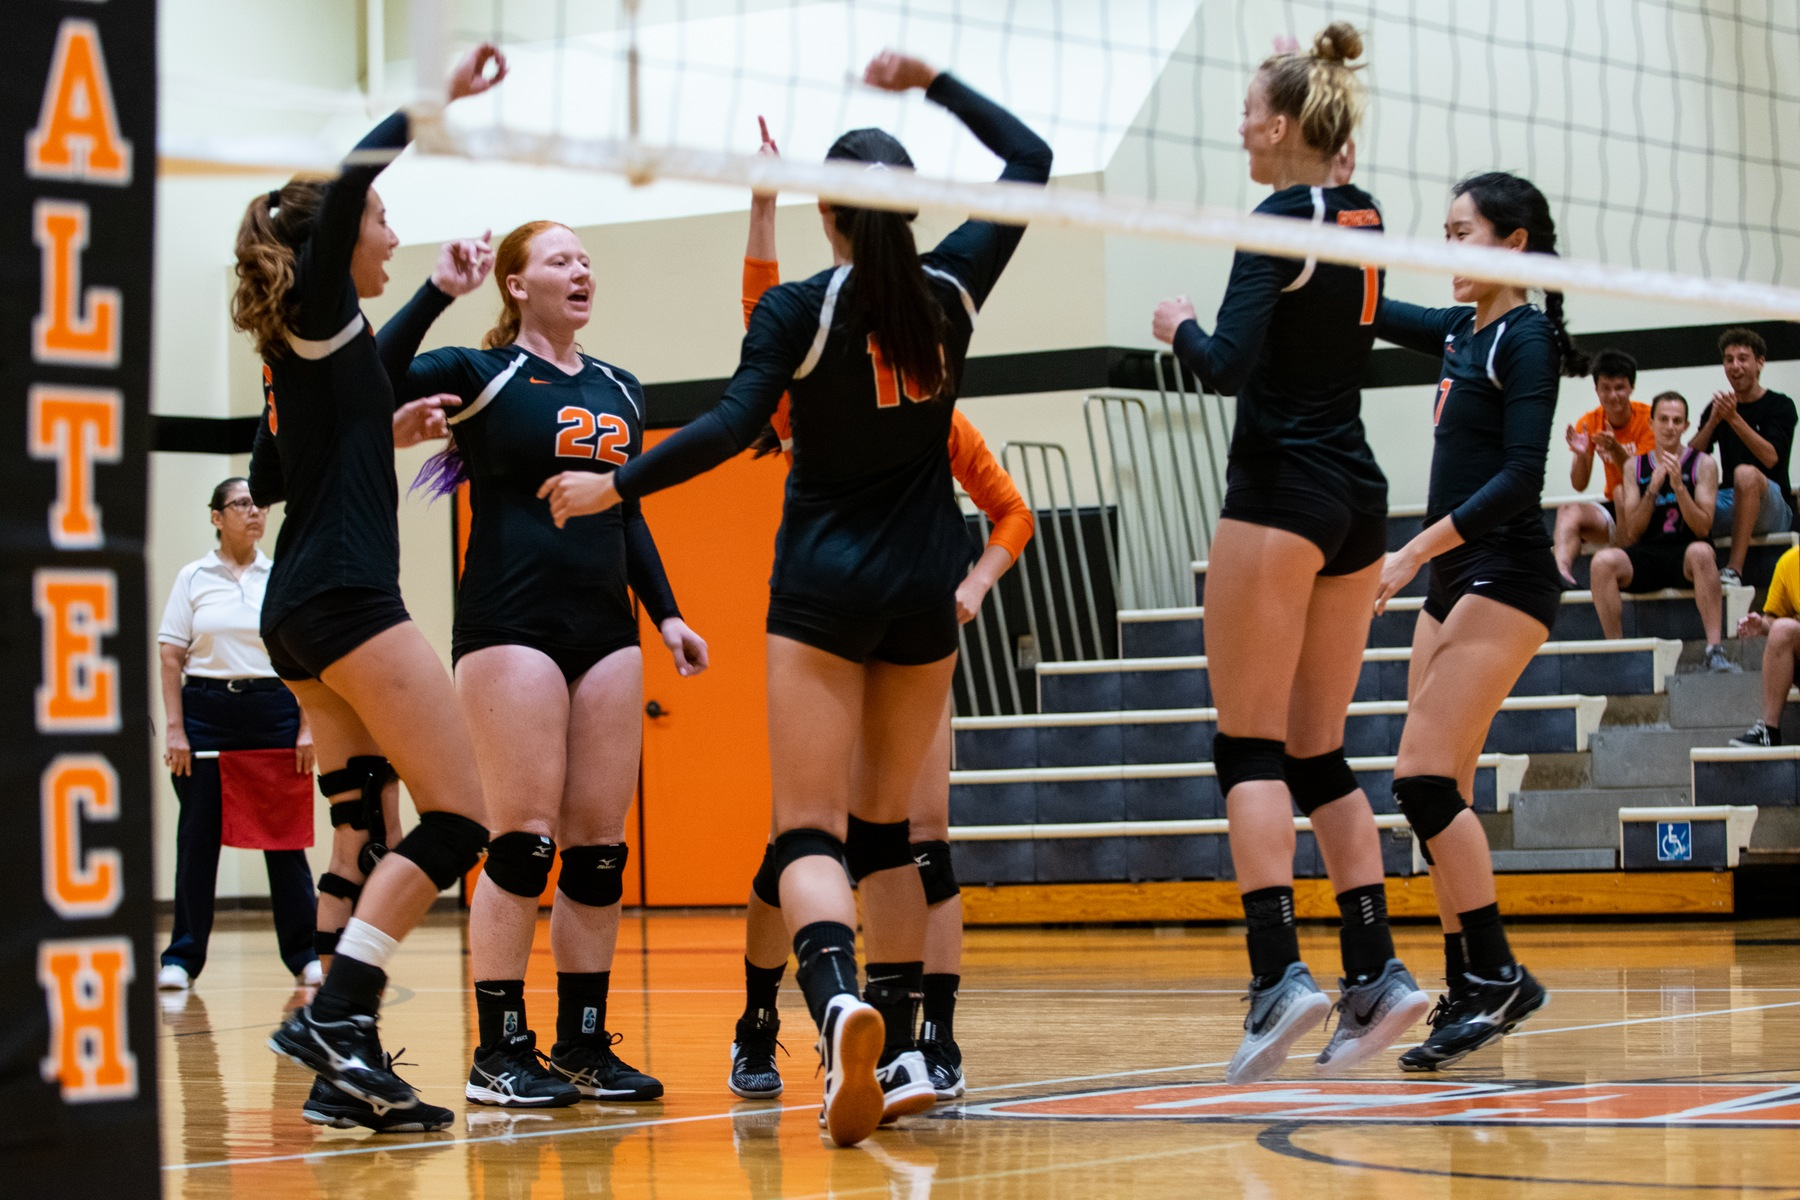 Caltech Stuns Whittier in SCIAC Volleyball Opener